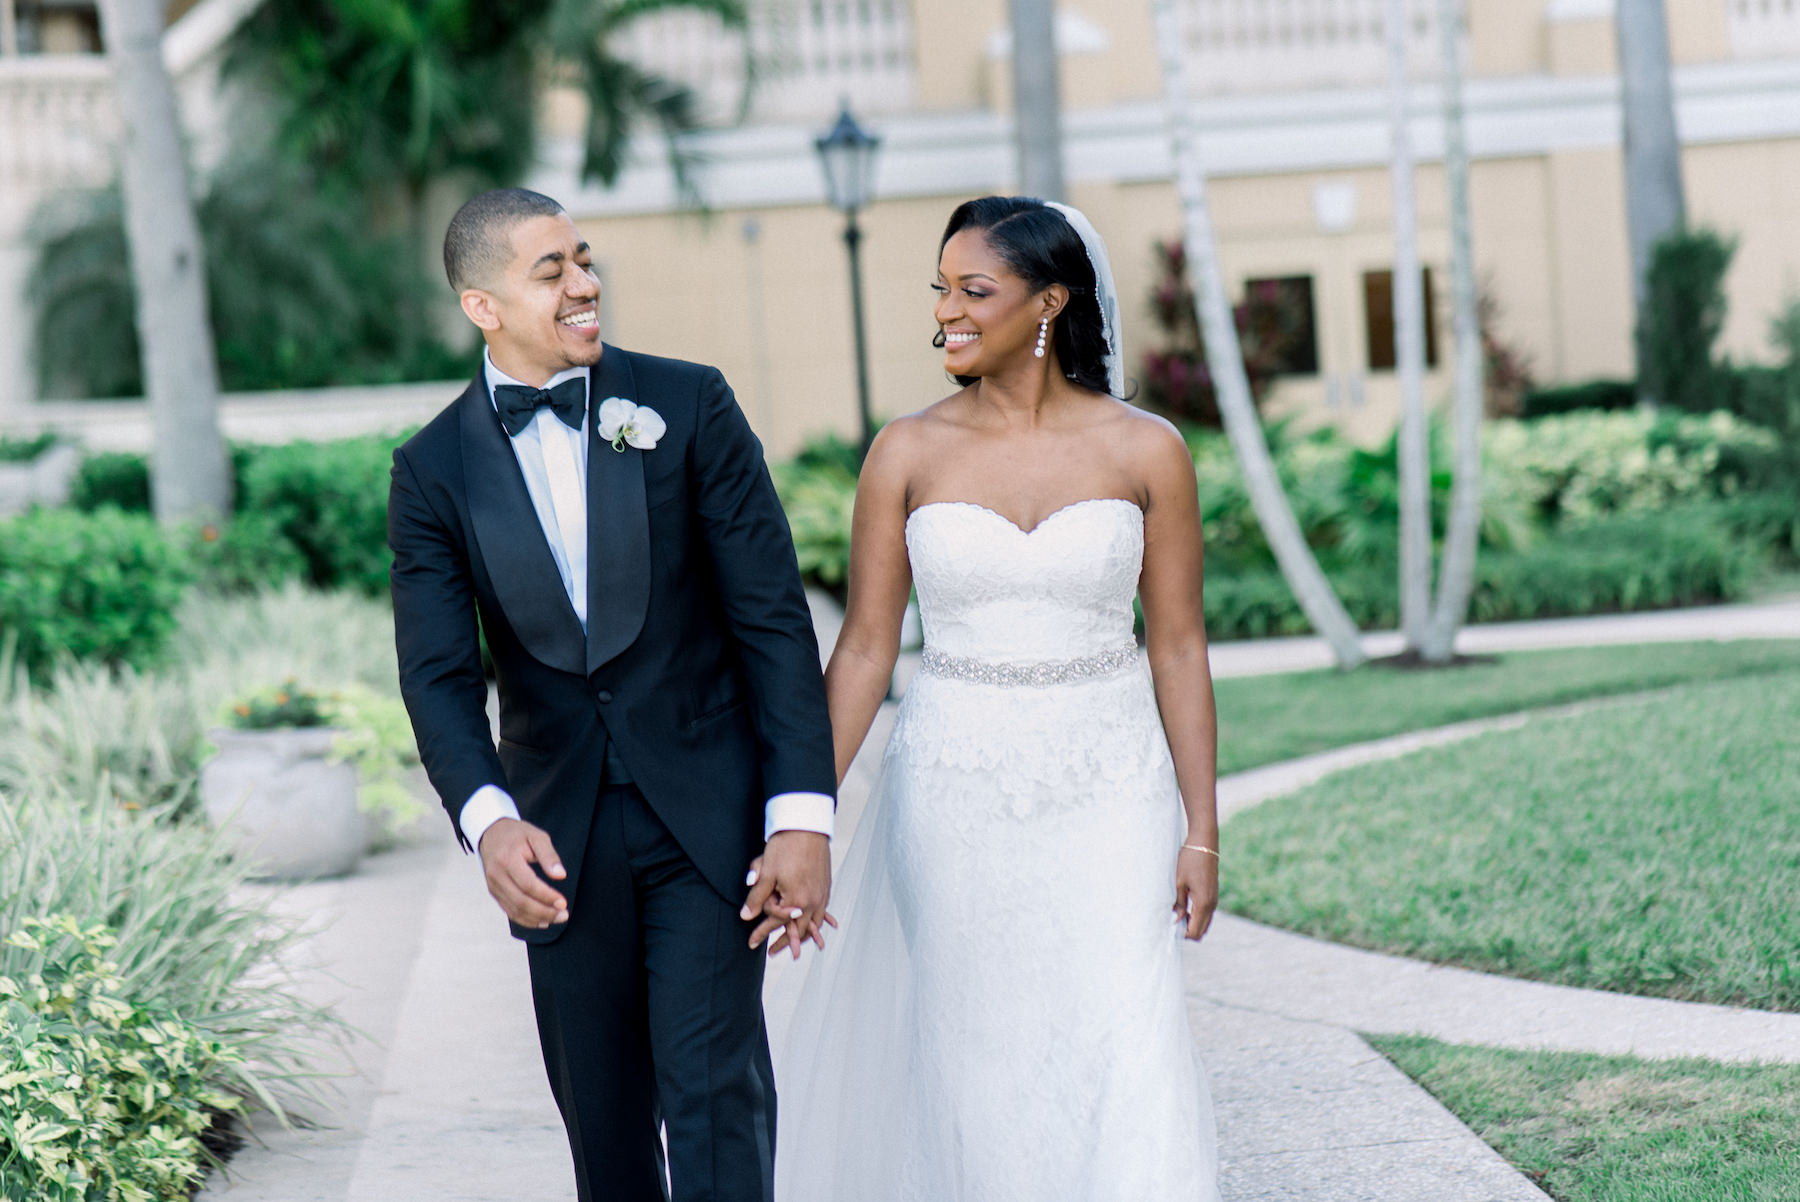 Florida Classic Bride in Lace Strapless and Sweetheart Neck Line with Rhinestone Belt Wedding Dress and Groom in Black Tuxedo Portrait